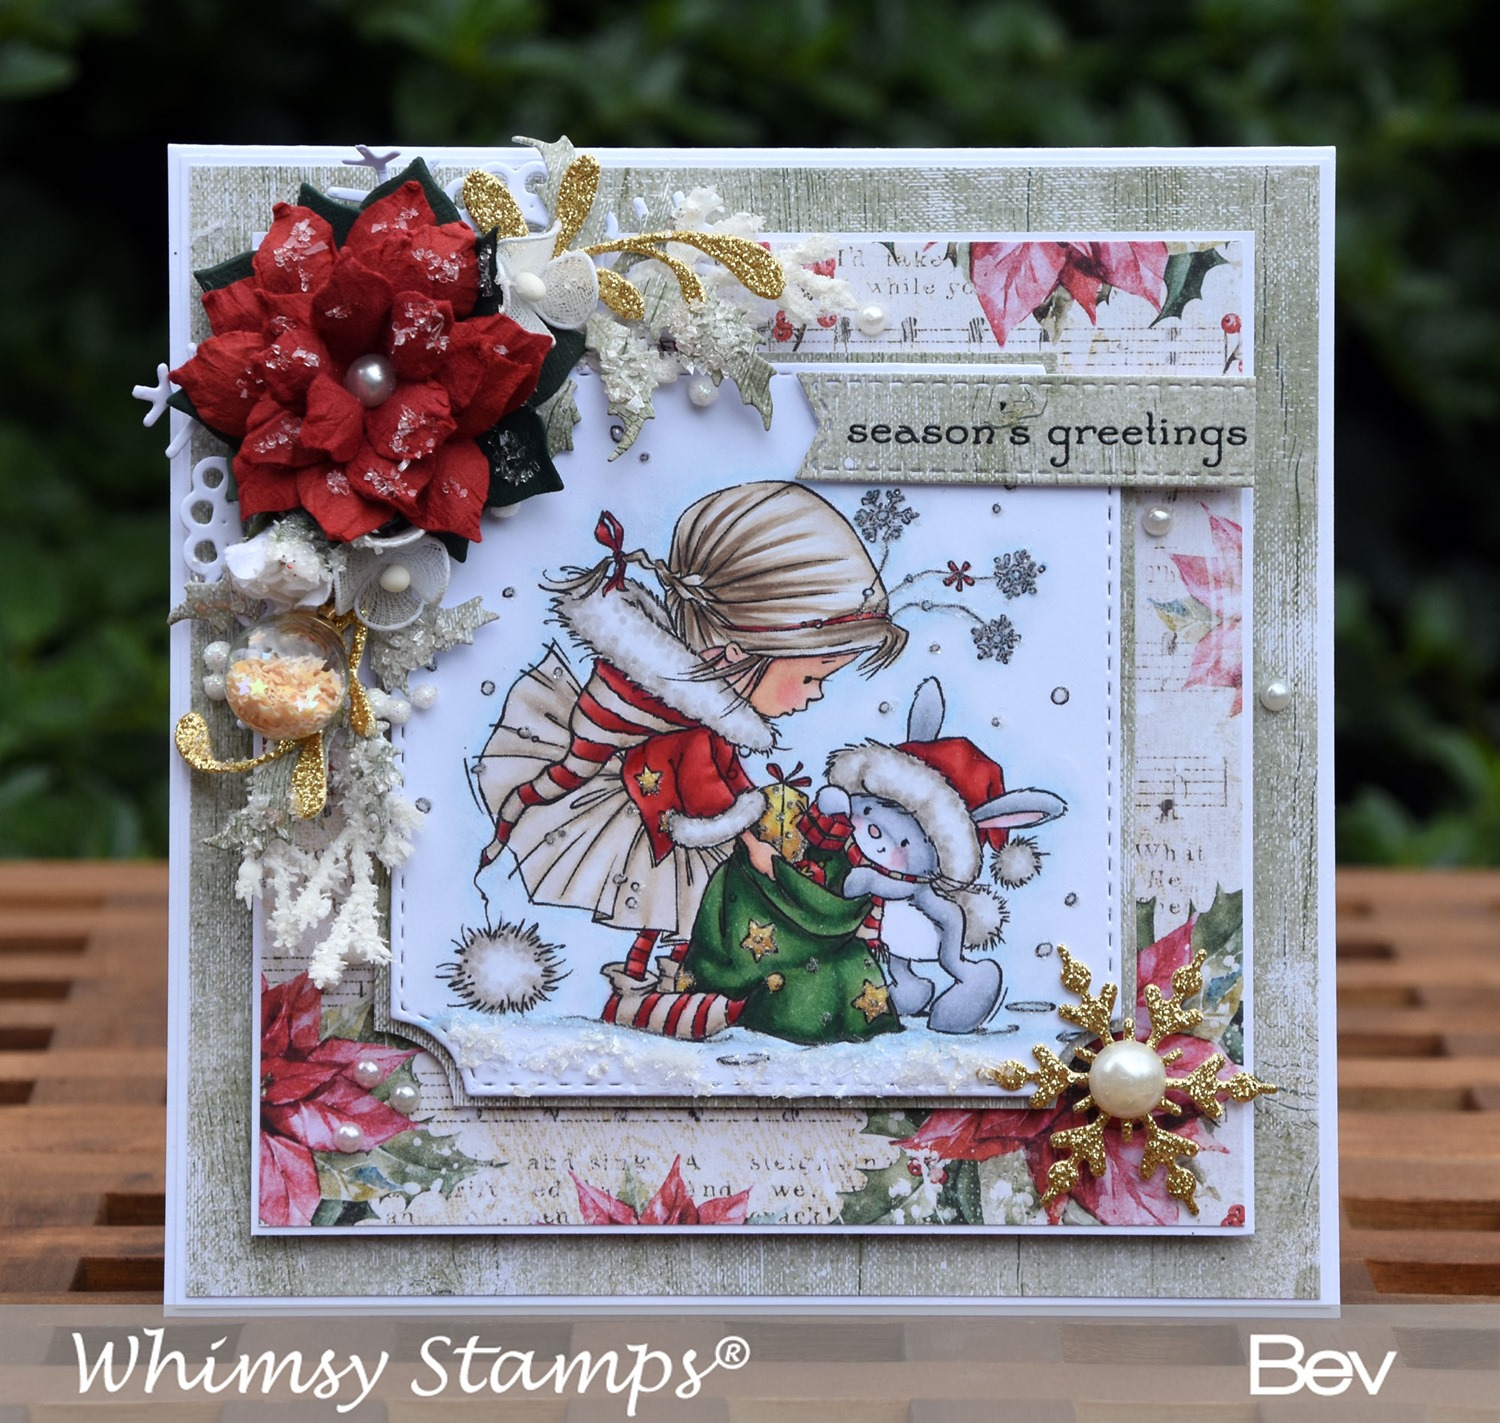 [bev-rochester-whimsy-stamps-santa%27s-helpers%5B2%5D]